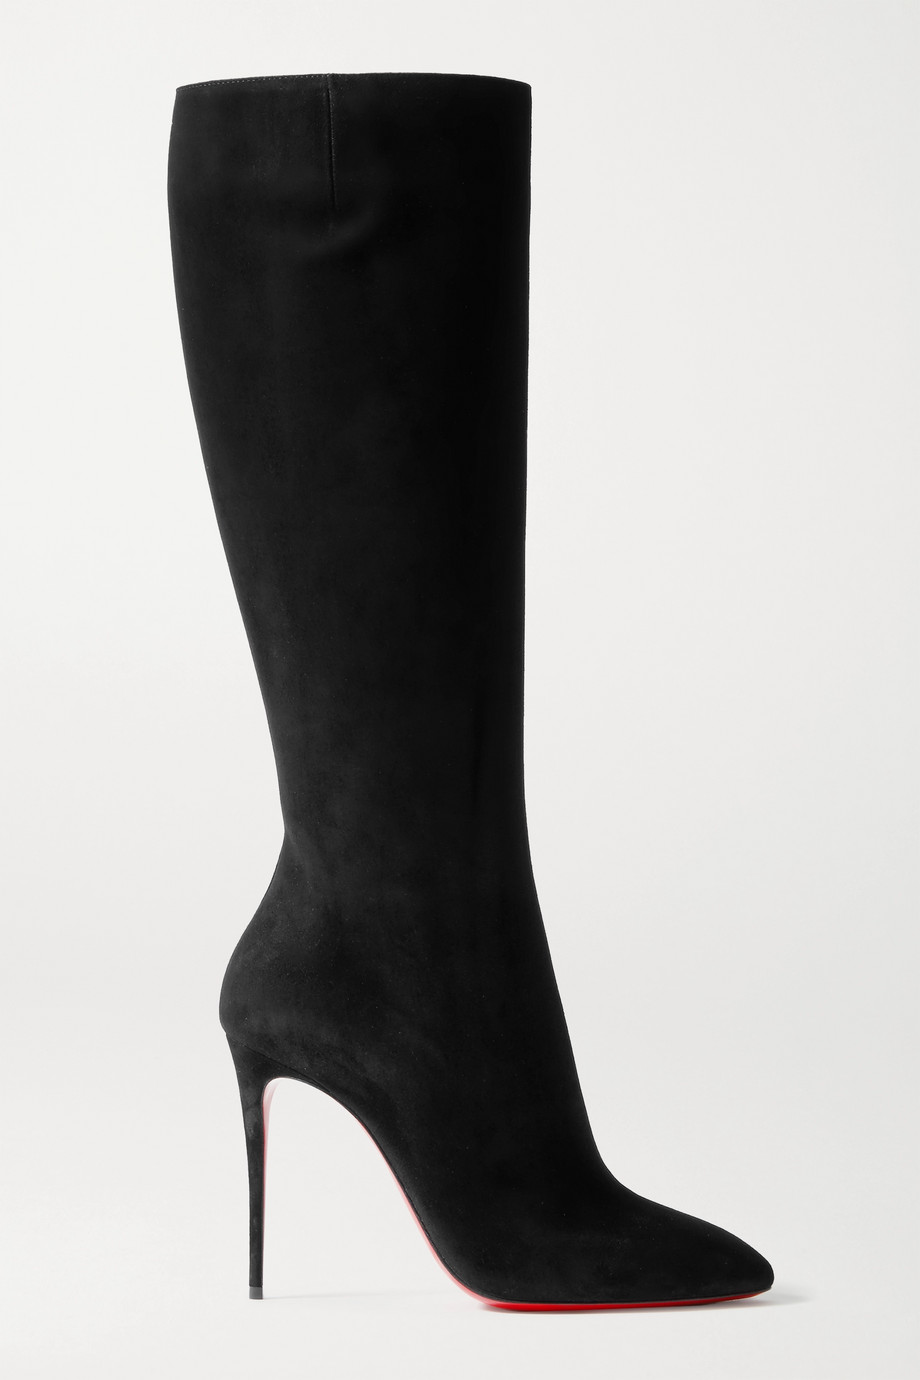 Christian Louboutin Eloise 100 suede knee boots